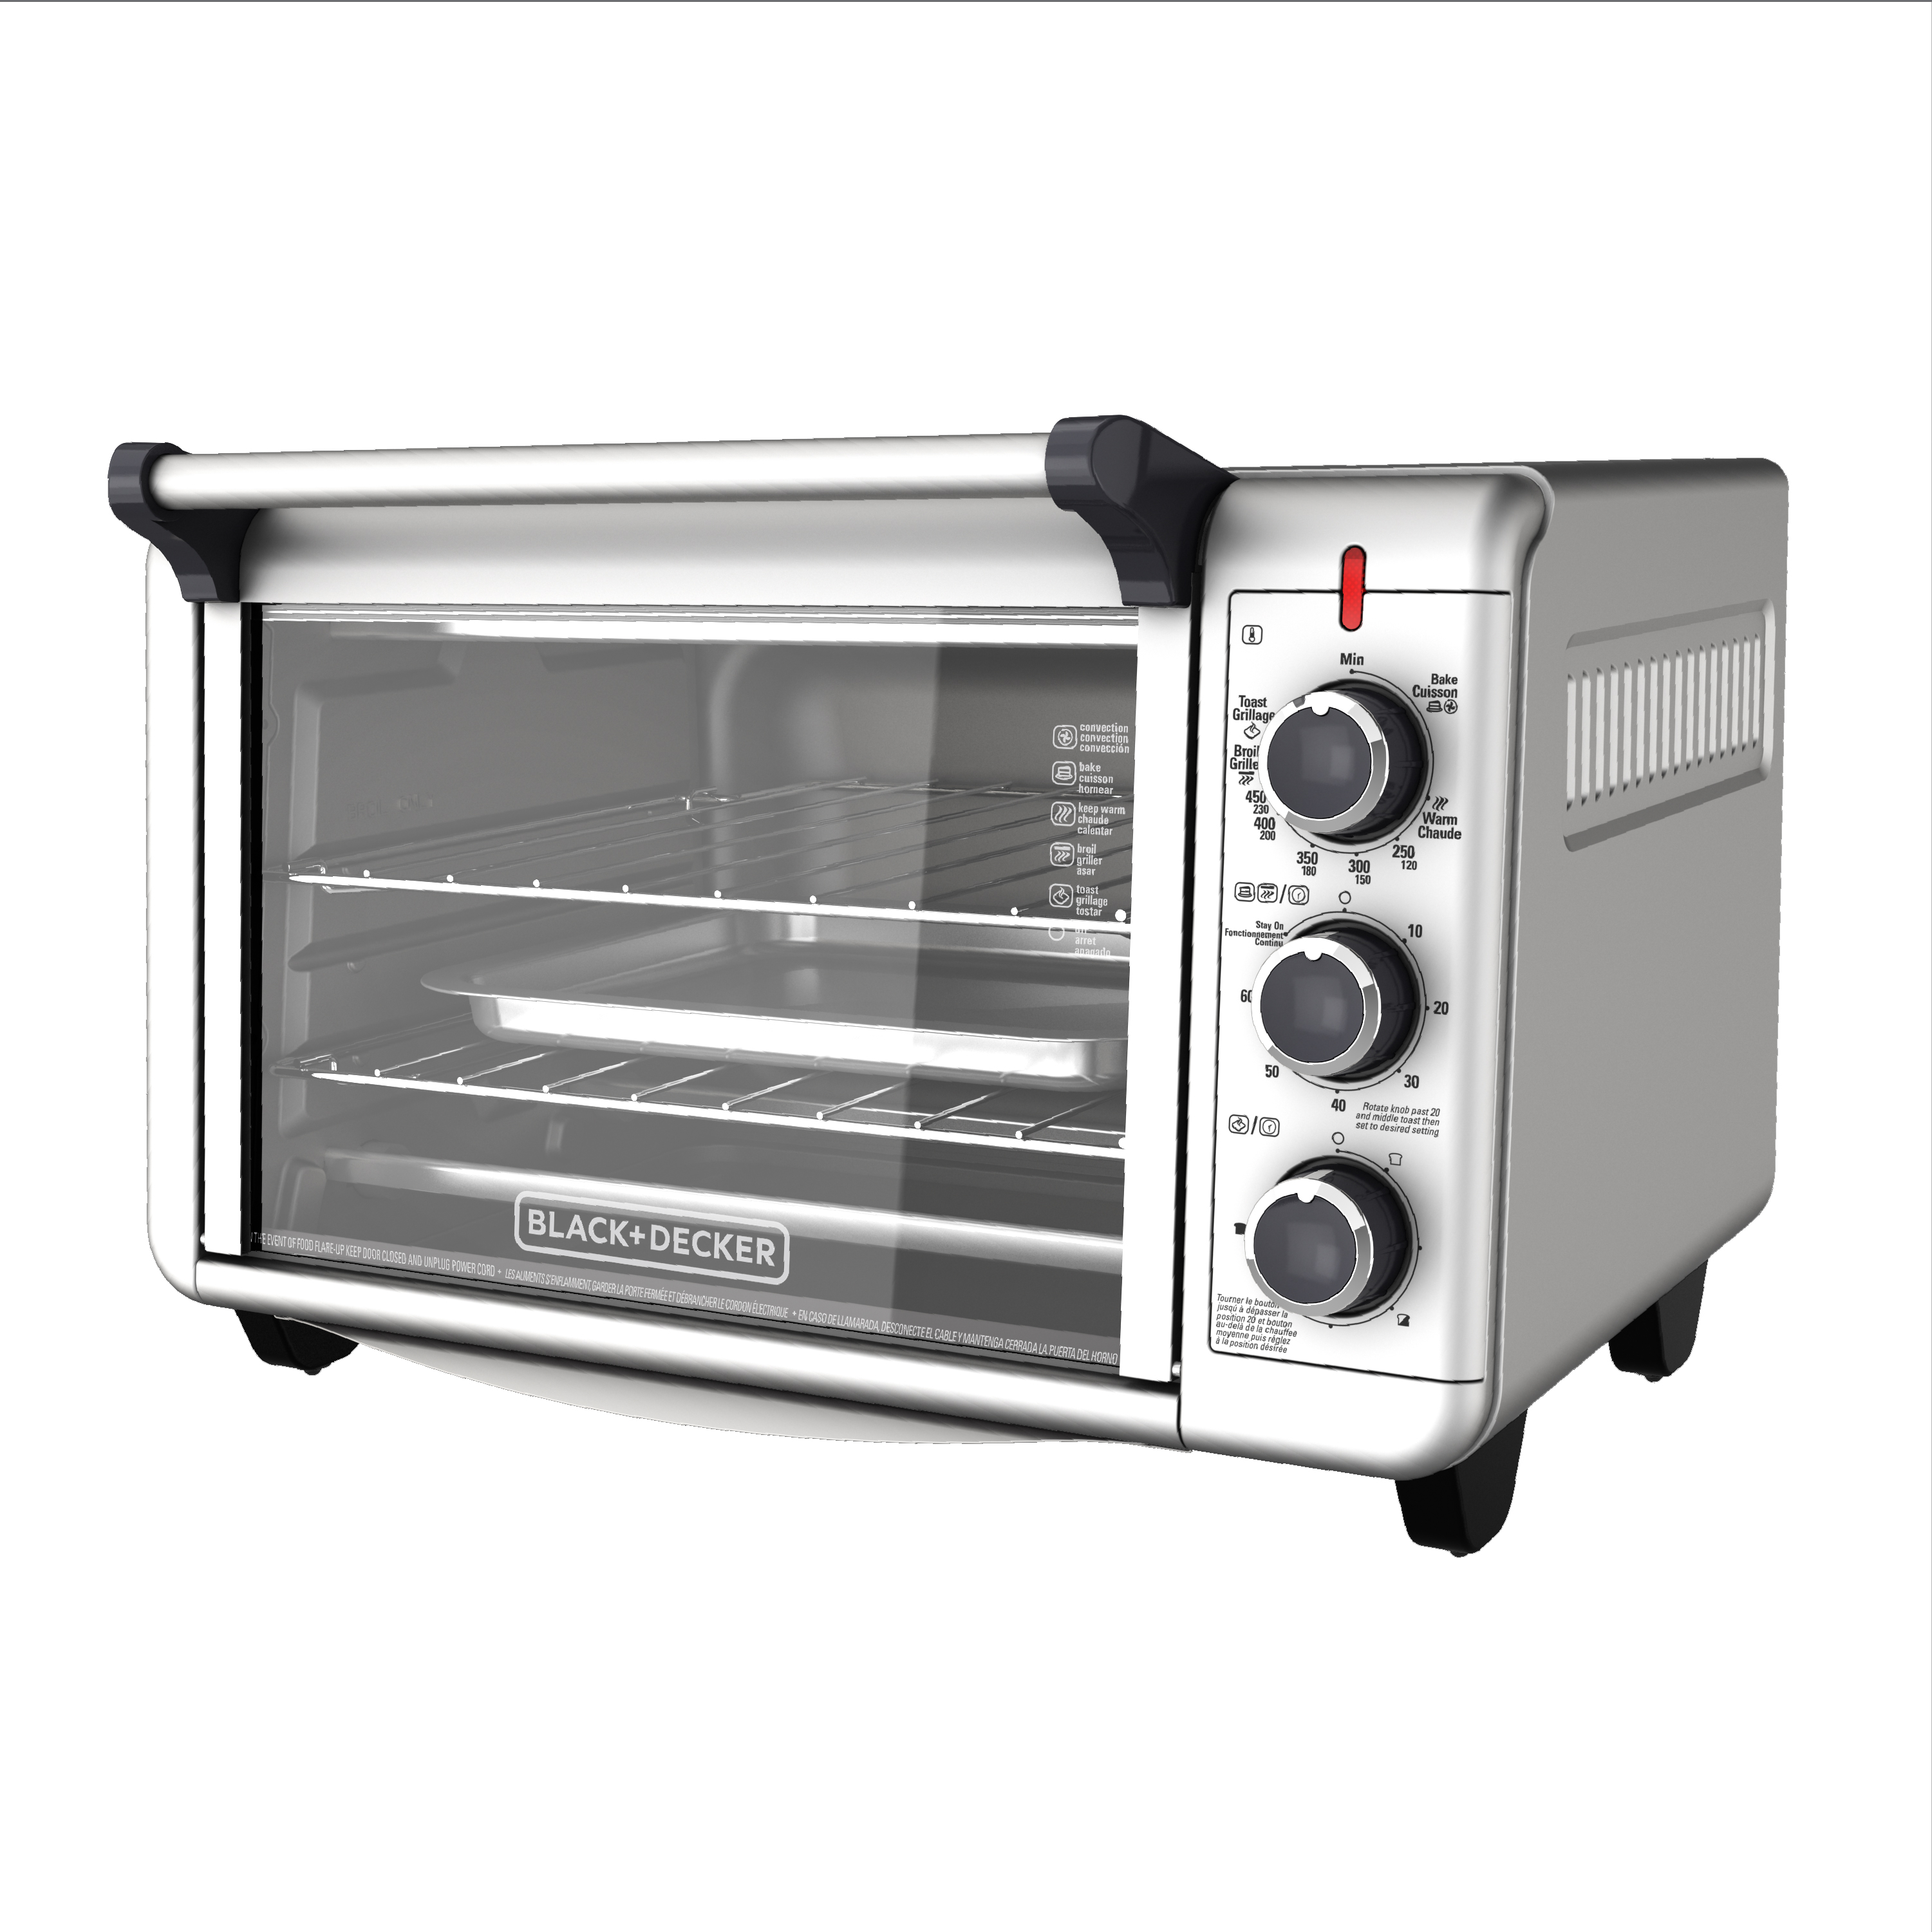 BLACK+DECKER Convection Countertop Oven, Stainless Steel, TO3000G